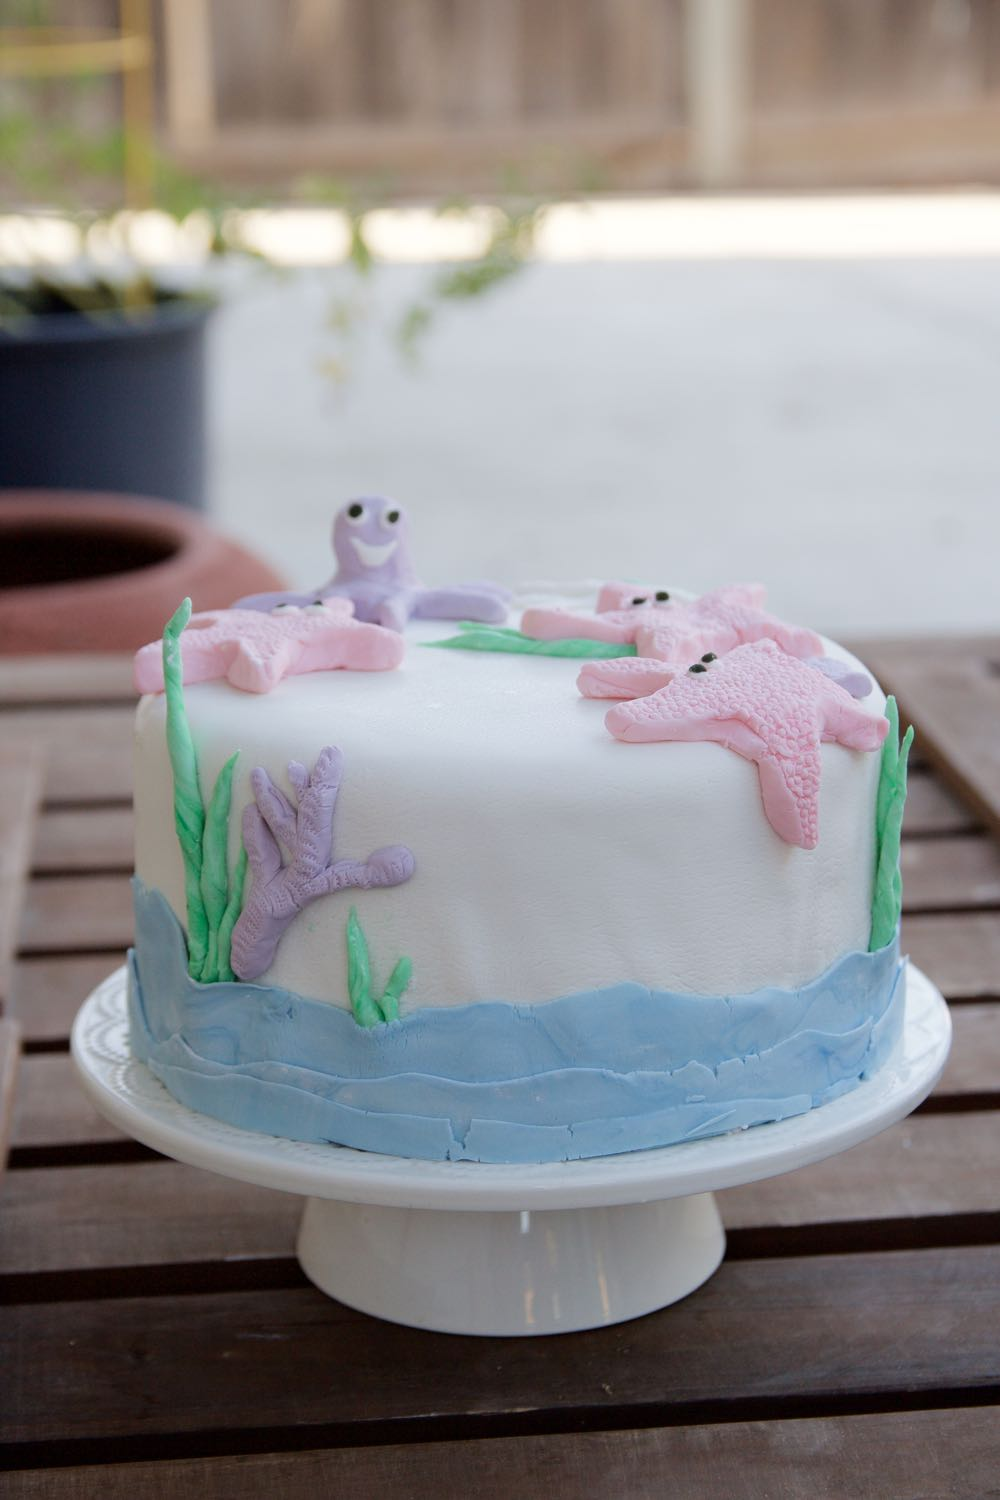 how to make a seashore themed fondant cake with sea creatures